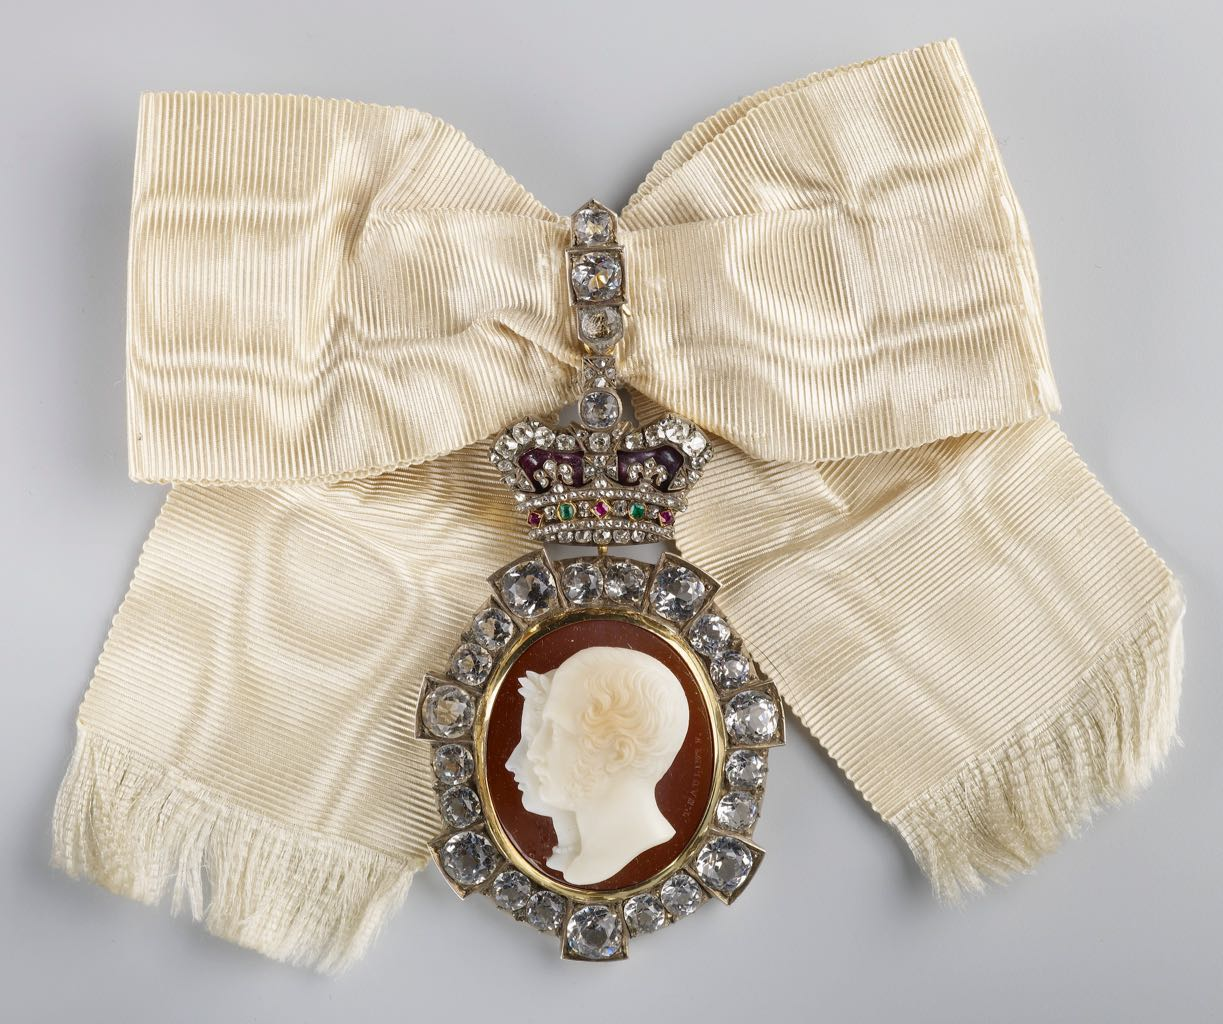 Badge of the Order of Victoria and Albert made around 1863 of a sardonyx cameo in a setting composed of gold, silver, enamel, diamond, rubies, emeralds, white pastes. Photo Royal Collection